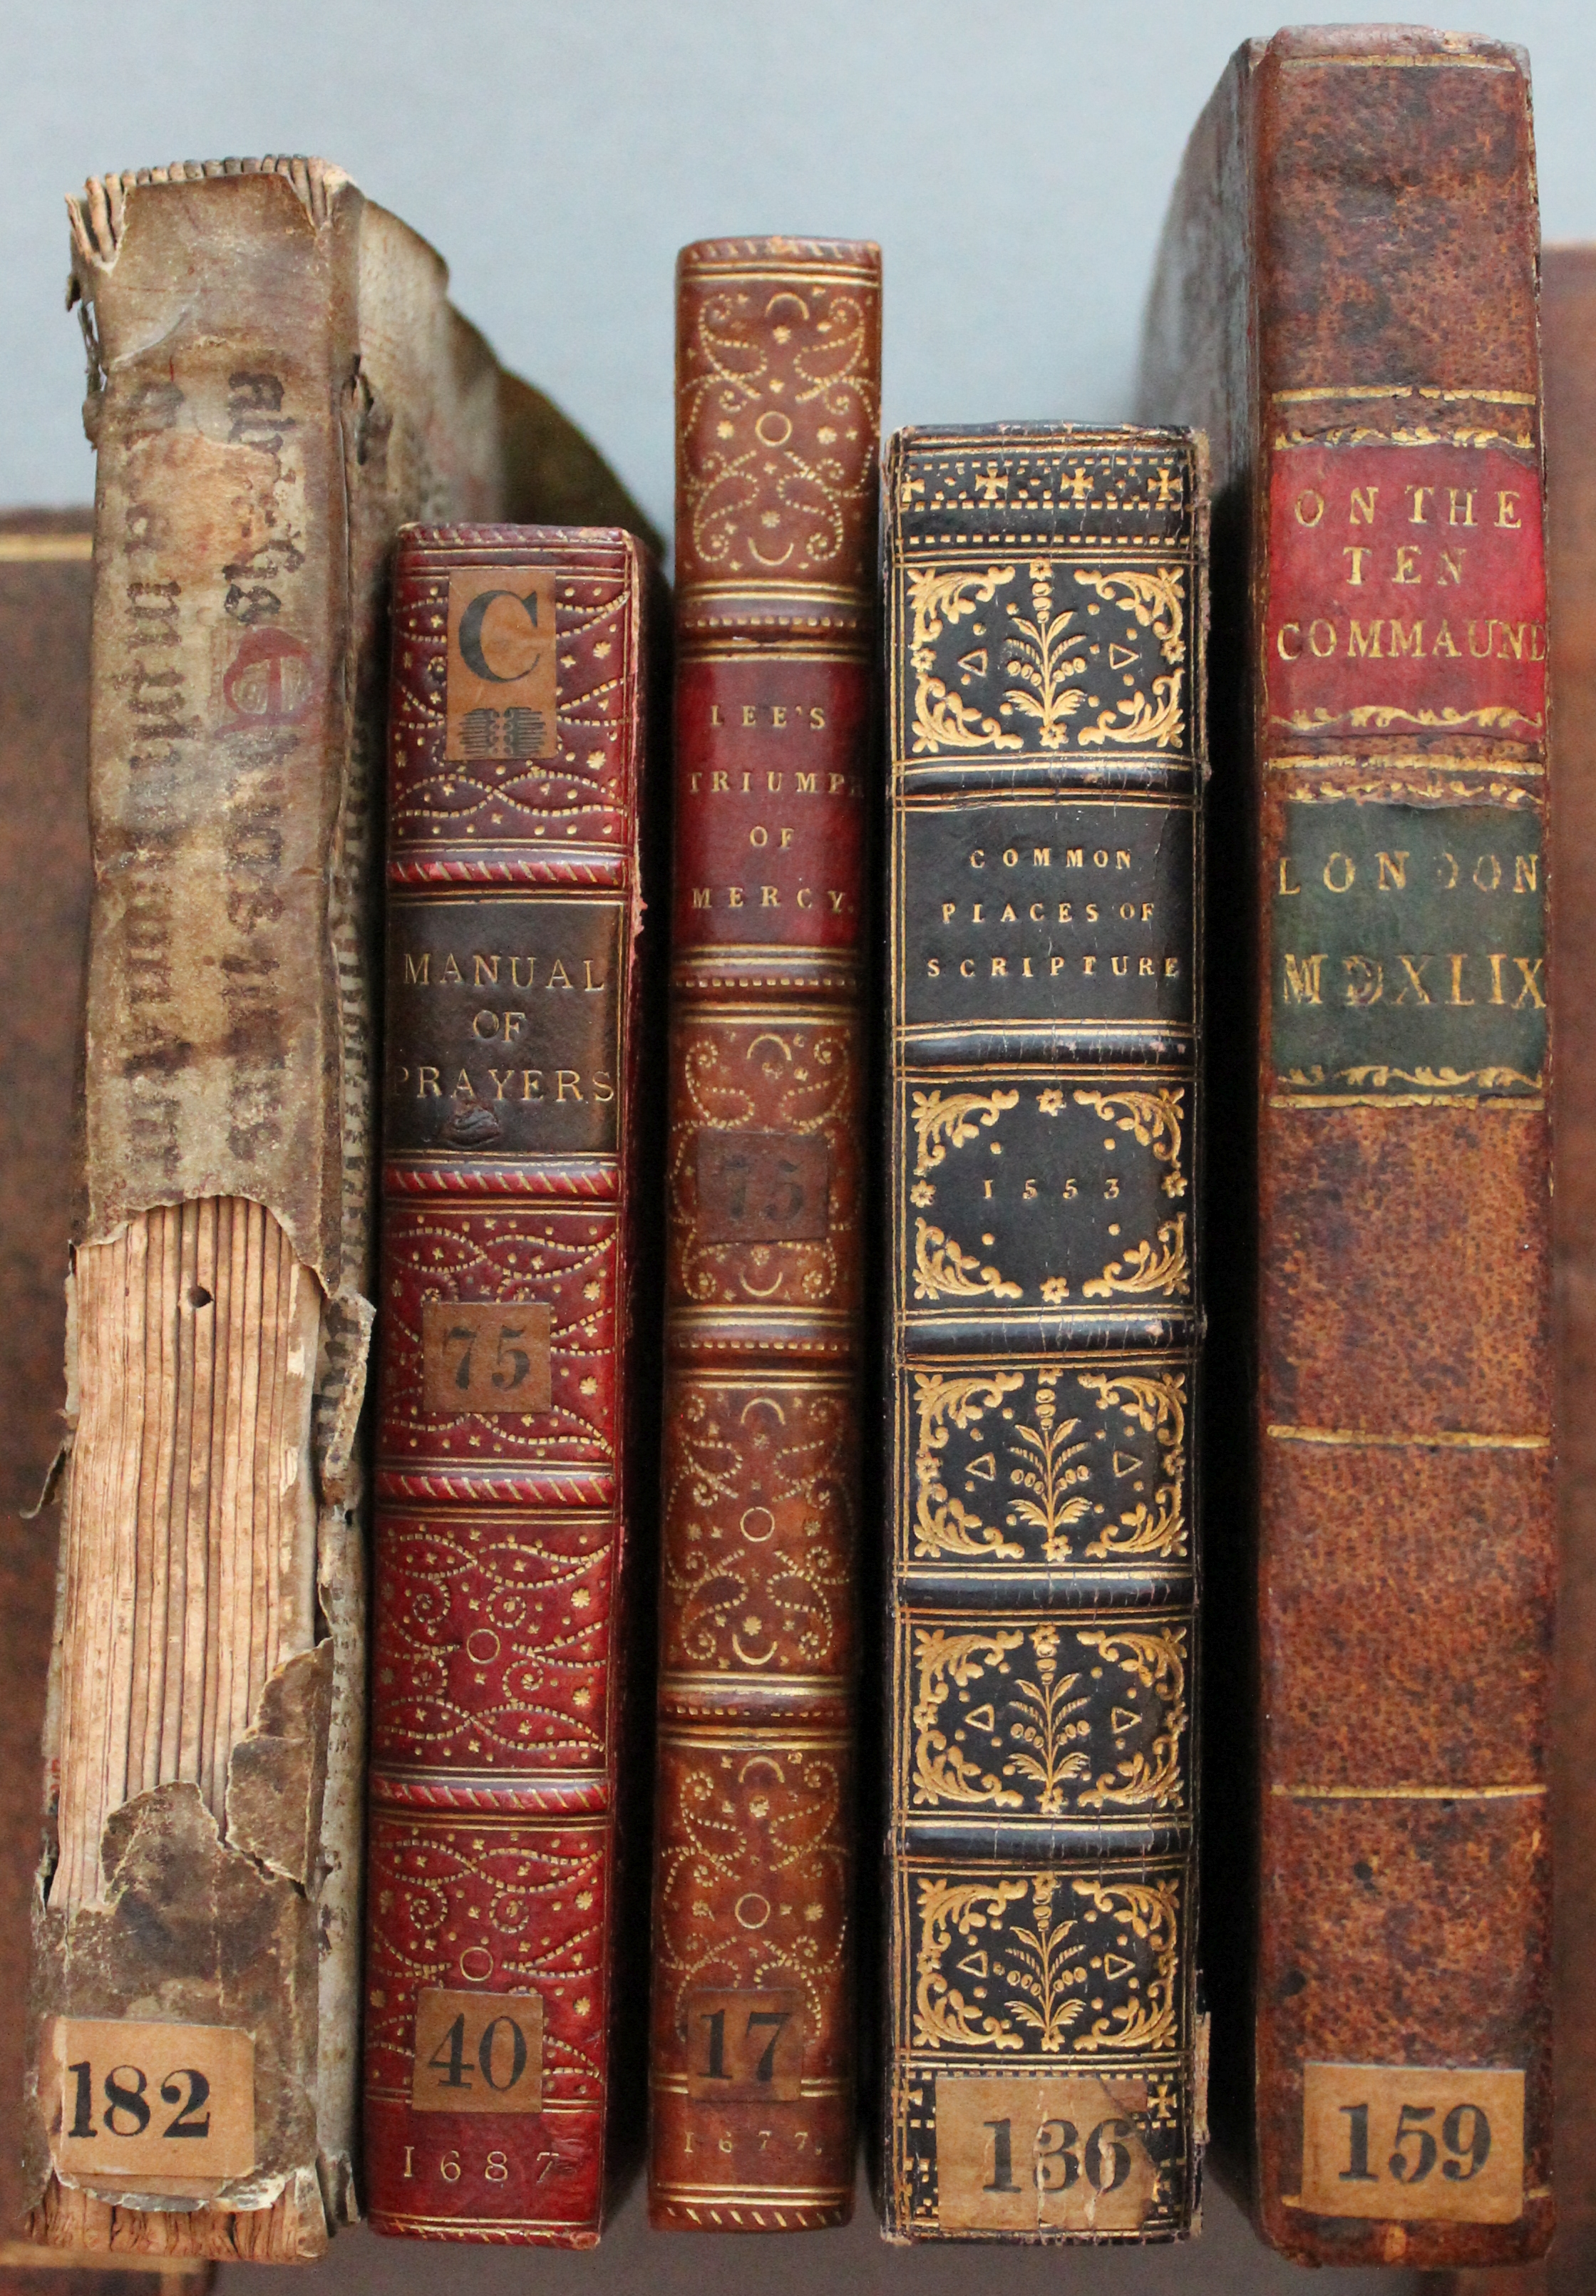 spines library digital spine project gold bands panels without thackeray labels leather king tooled raised vellum gatherings exposed decorative rare